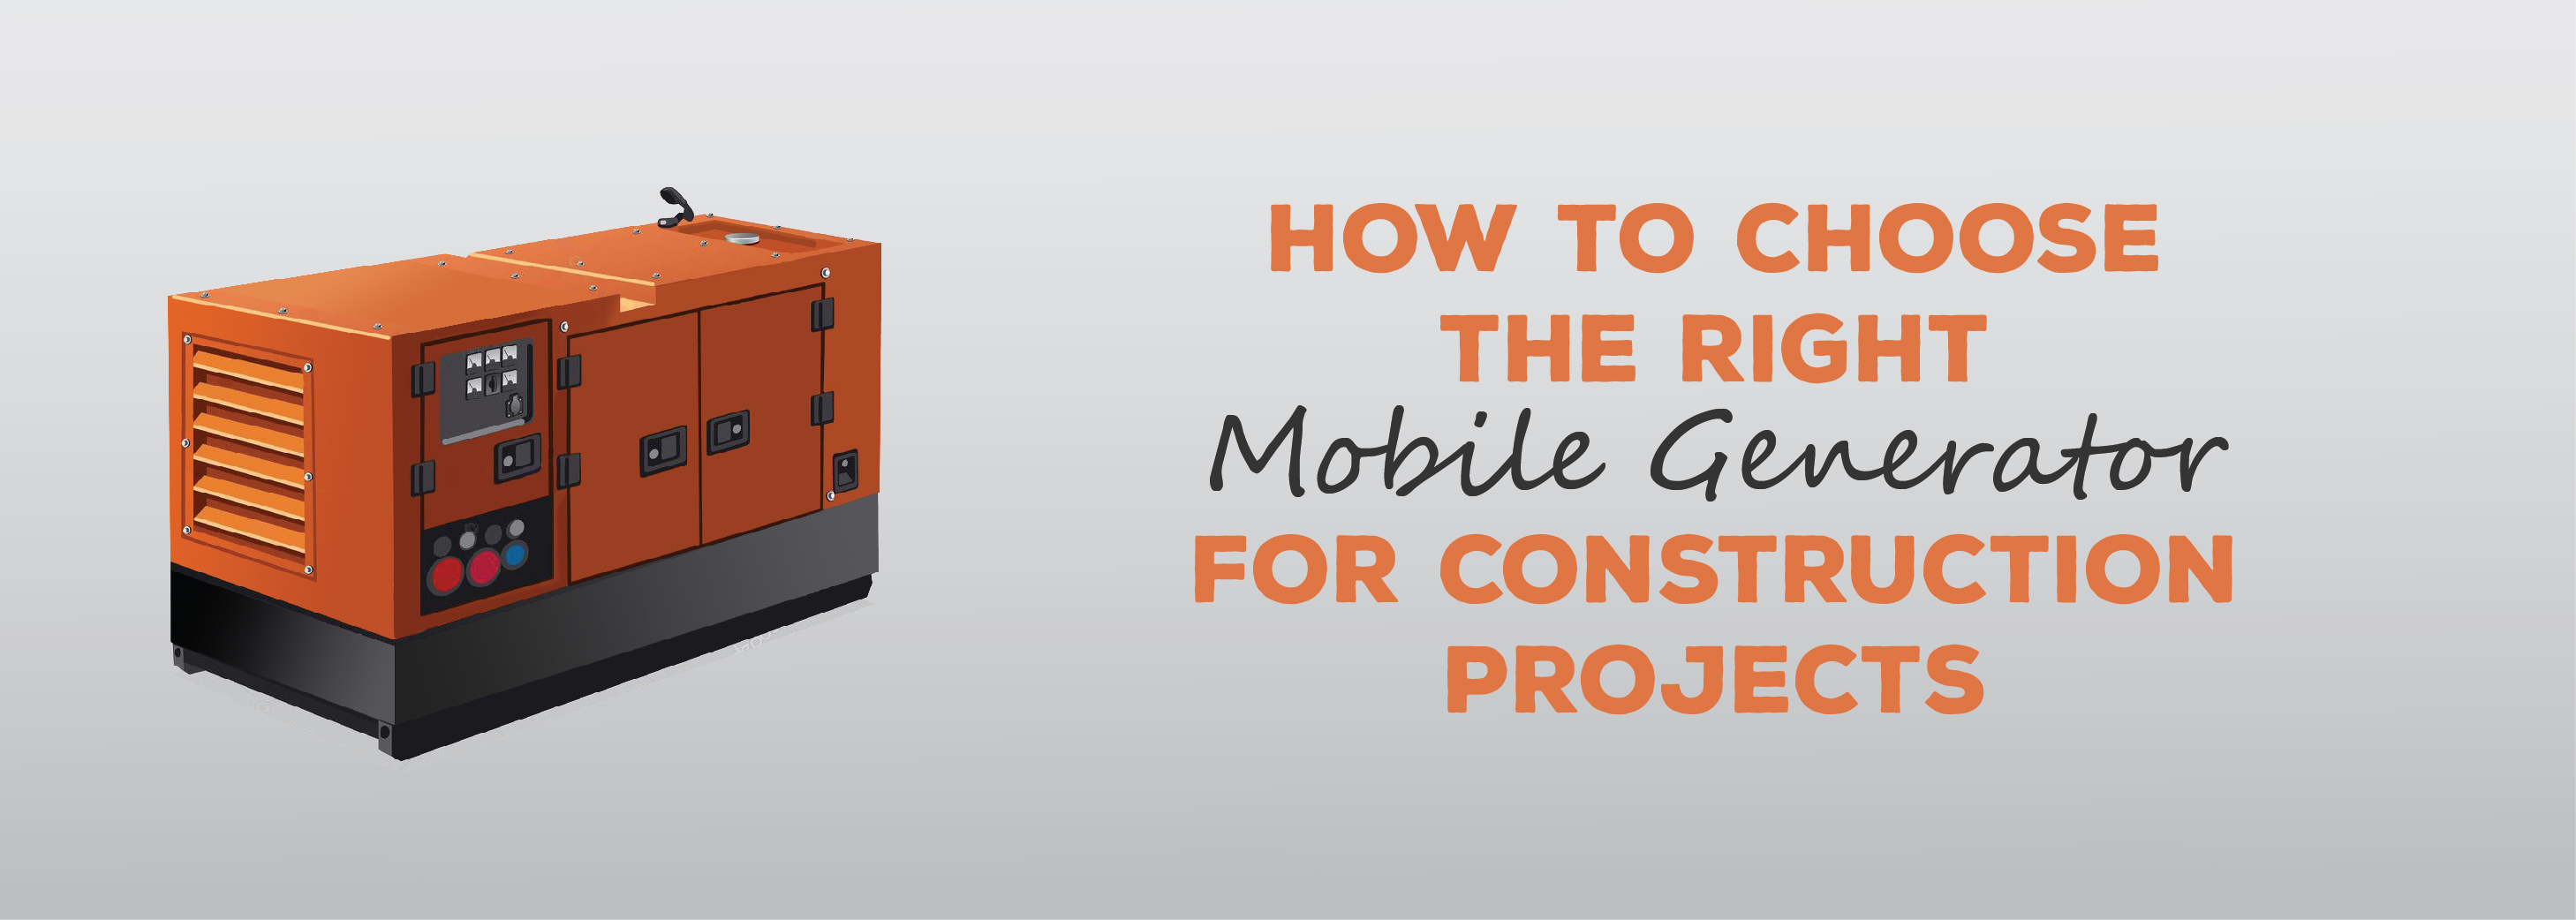 How to Choose the Right Mobile Generator for Construction Projects | ADI Agency | Generator Warranty